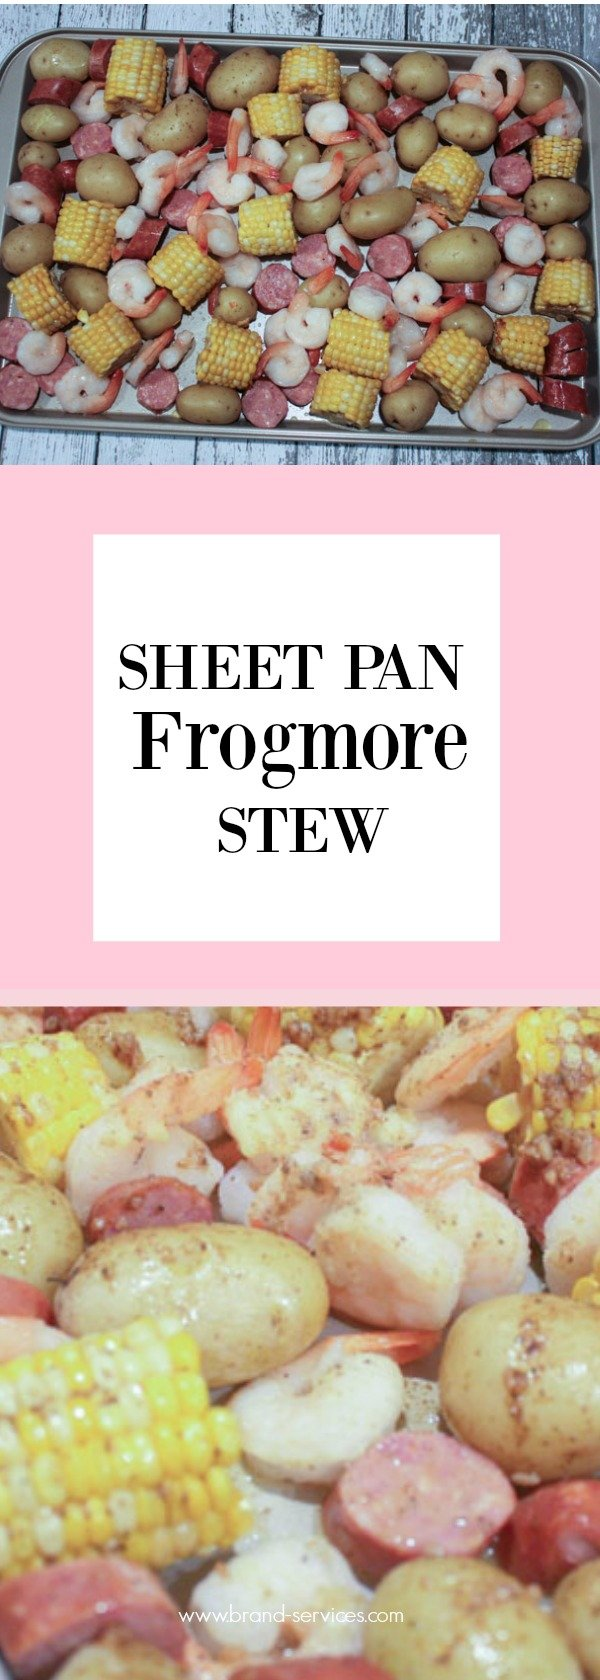 SHEET PAN FROGMORE STEW